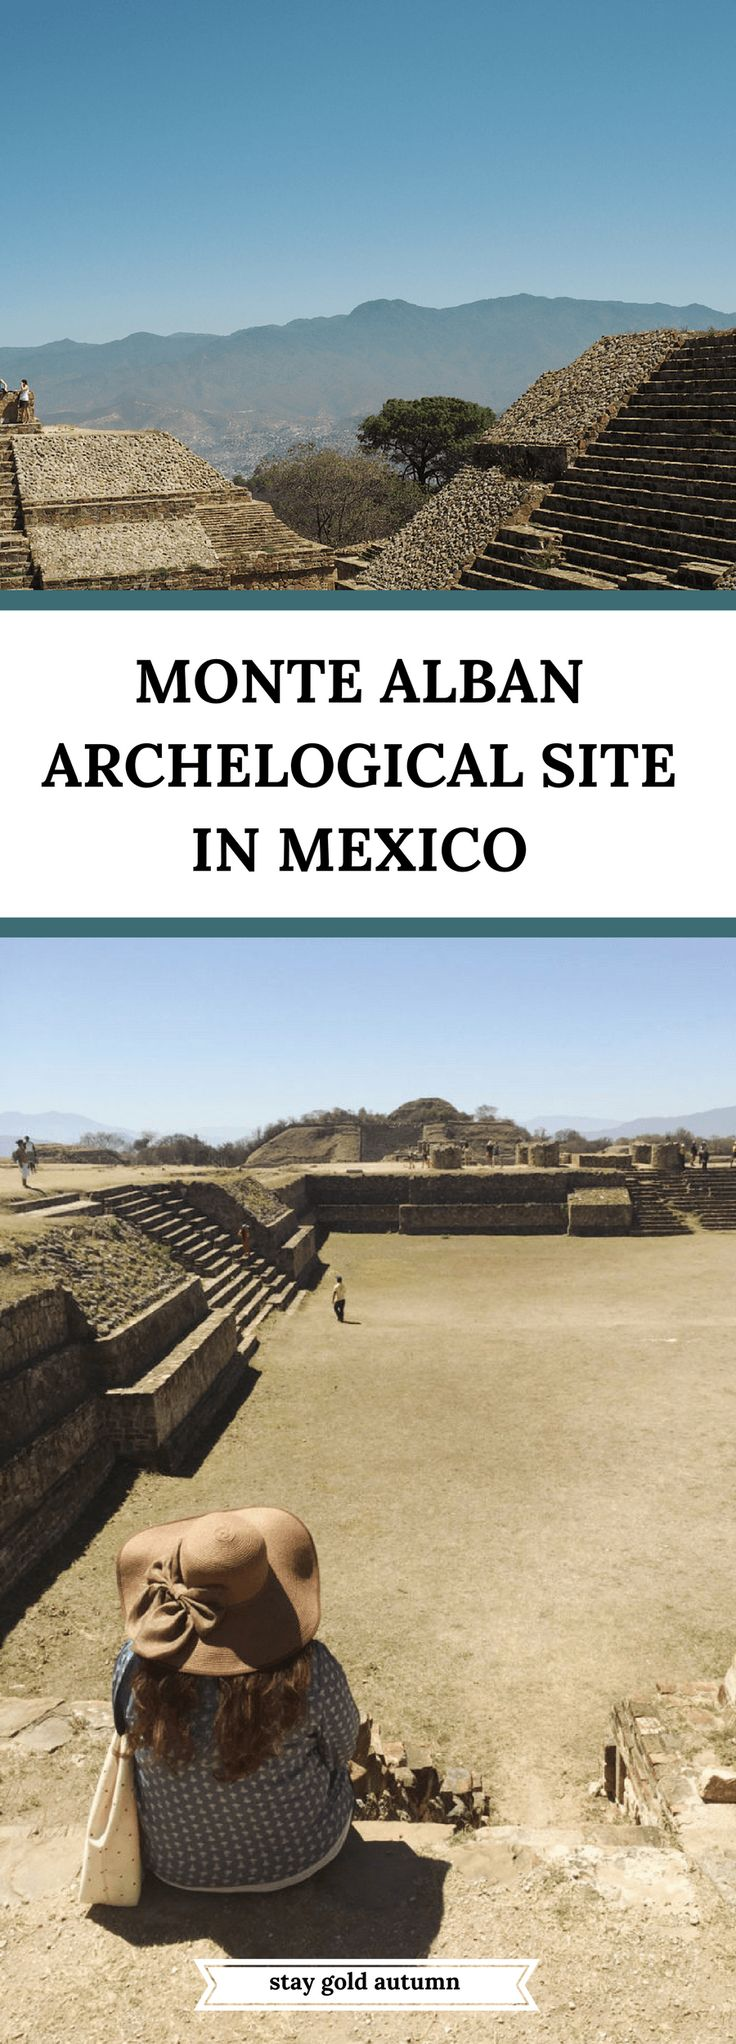 Monte alb n archaeological site monte alb n was once the economic center for mesoamerica for 1 000